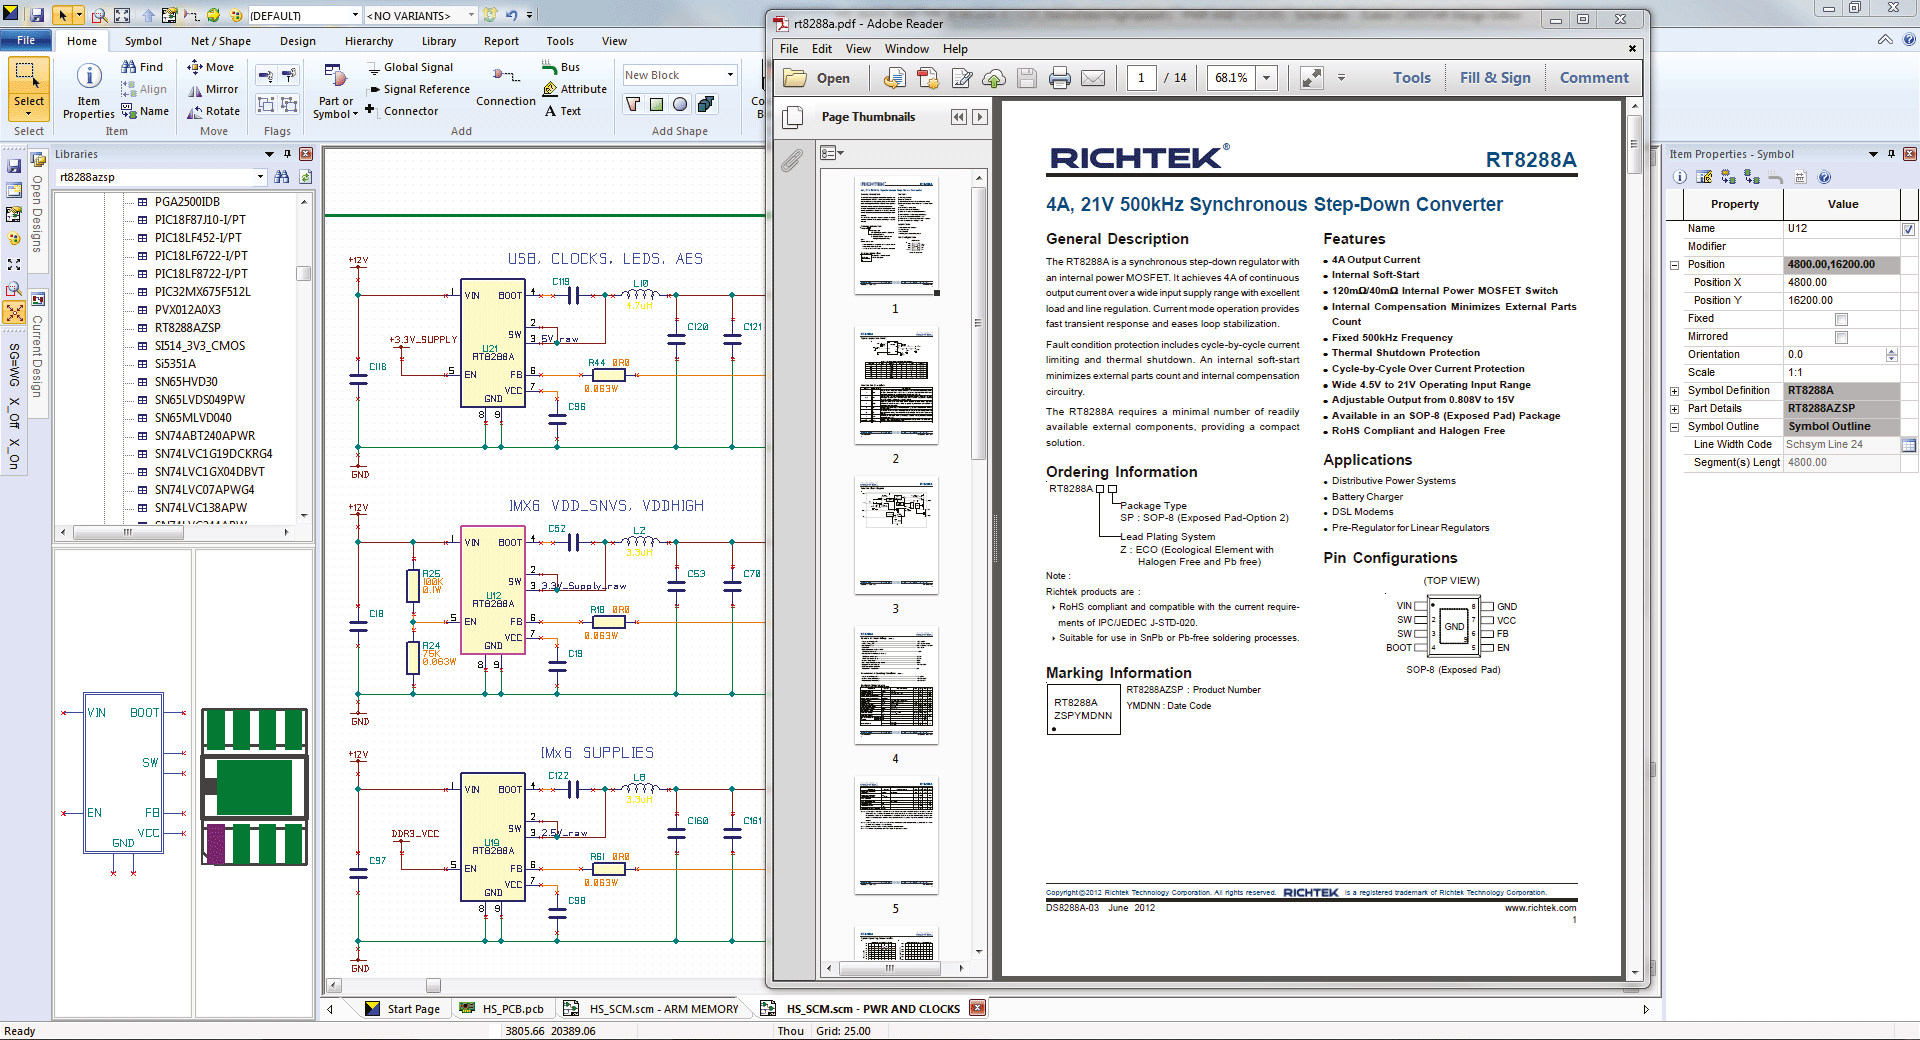 3D Promotion pcb design software cadstar basic hyperlinks to external data sources